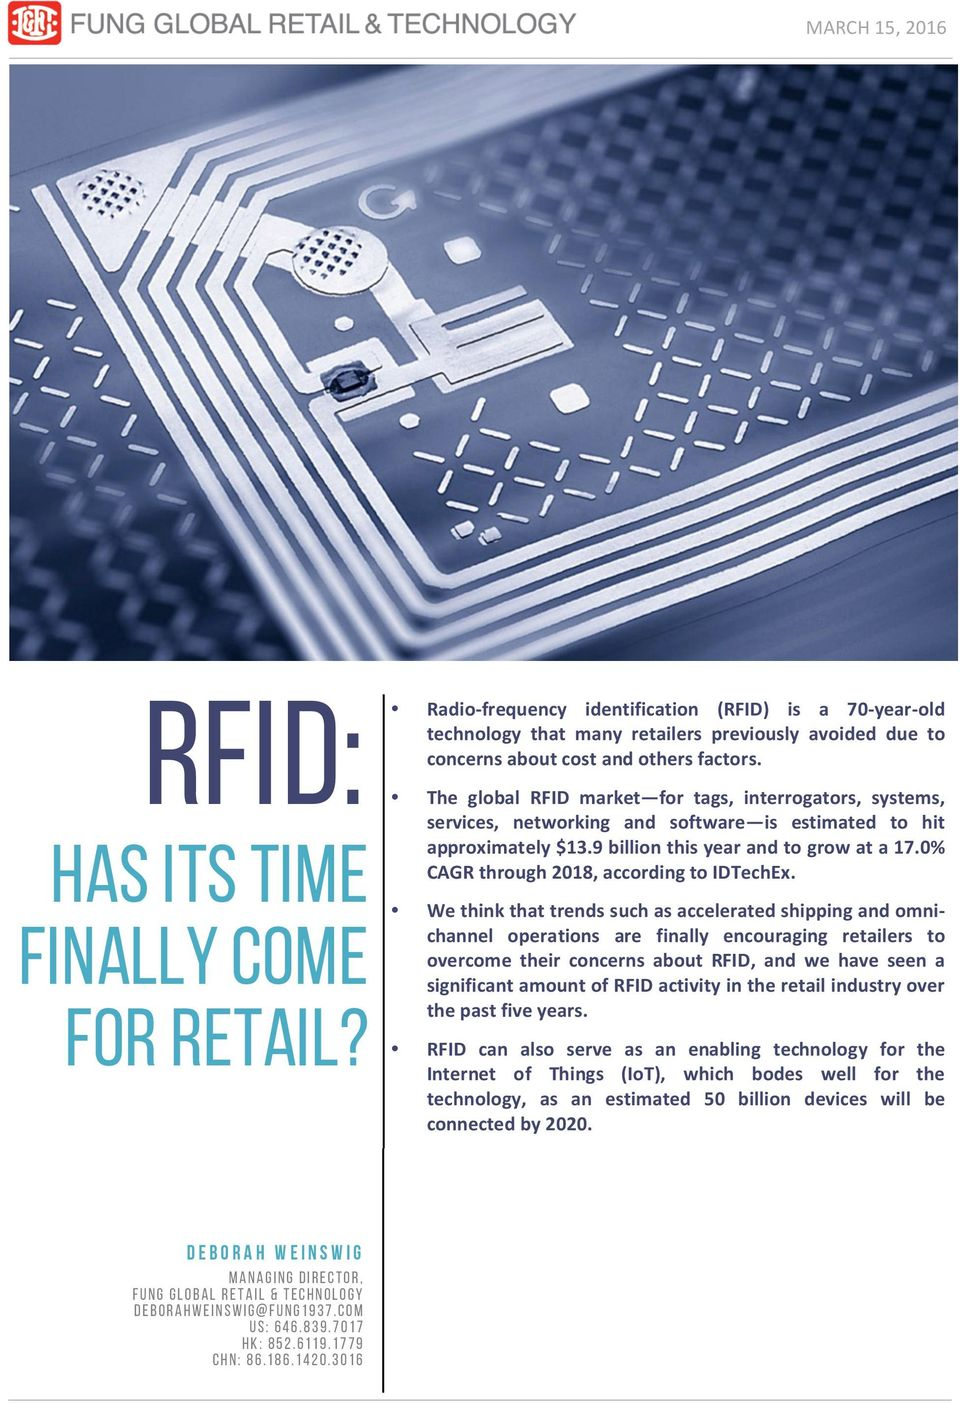 RFID: Has Its Time Finally Come for Retail? MARCH 15, PDF